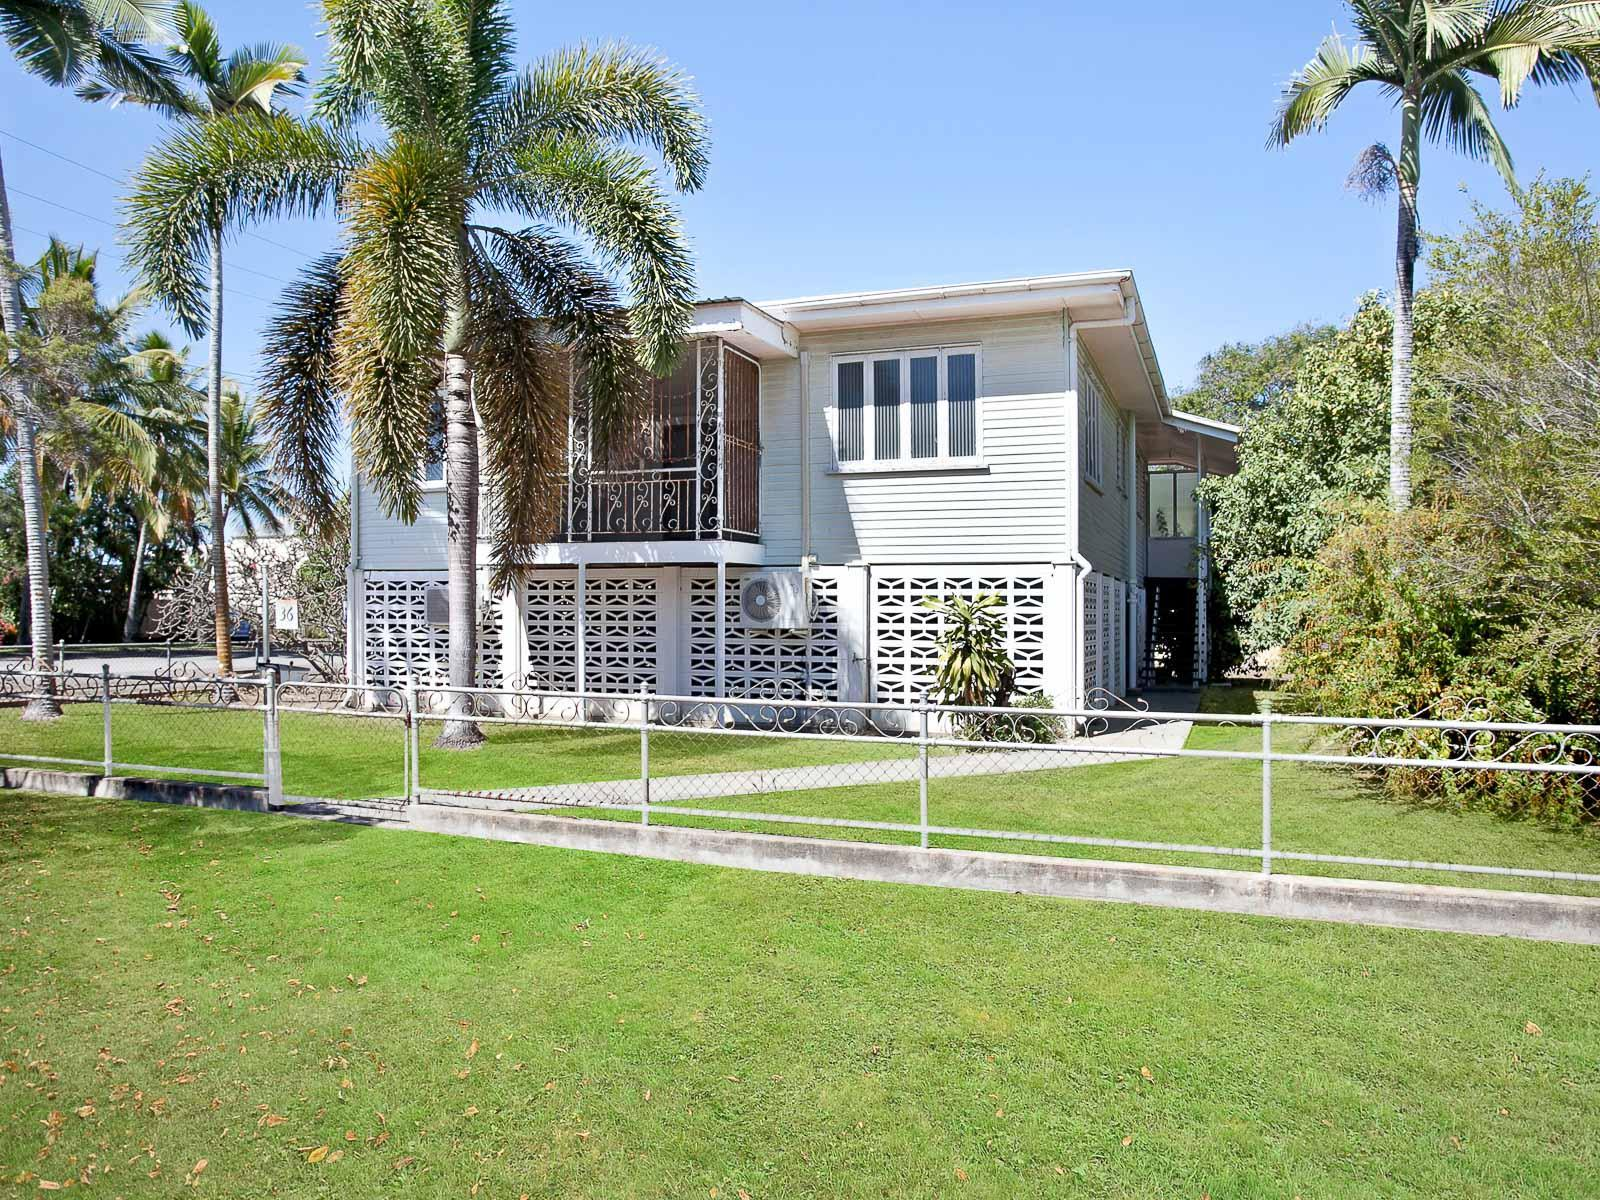 Qld Property Rentals Townsville